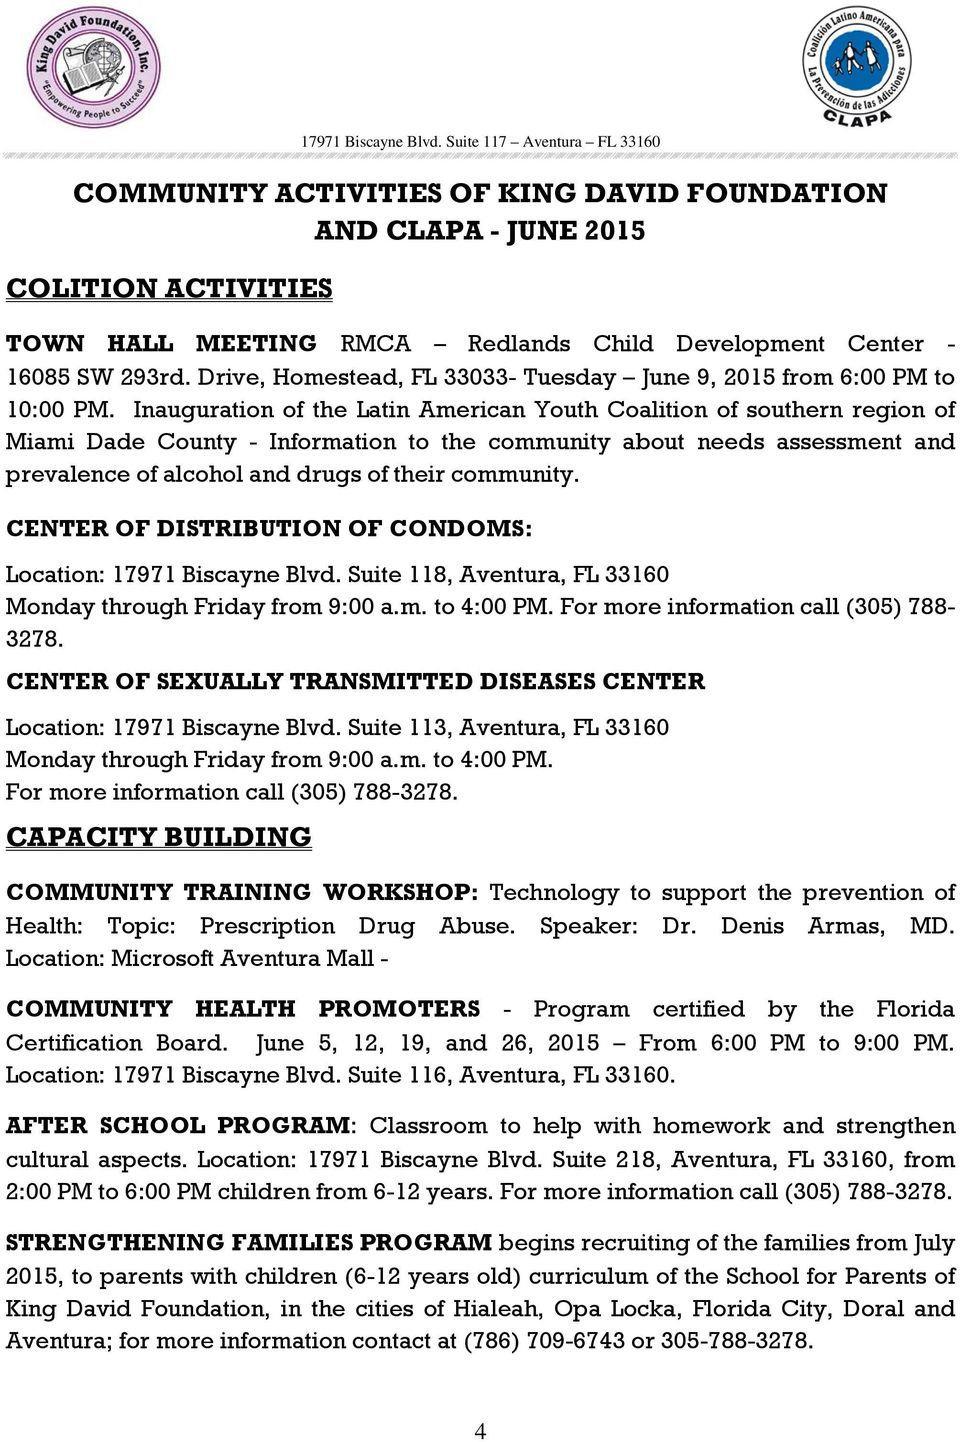 Inauguration of the Latin American Youth Coalition of southern region of Miami Dade County - Information to the community about needs assessment and prevalence of alcohol and drugs of their community.